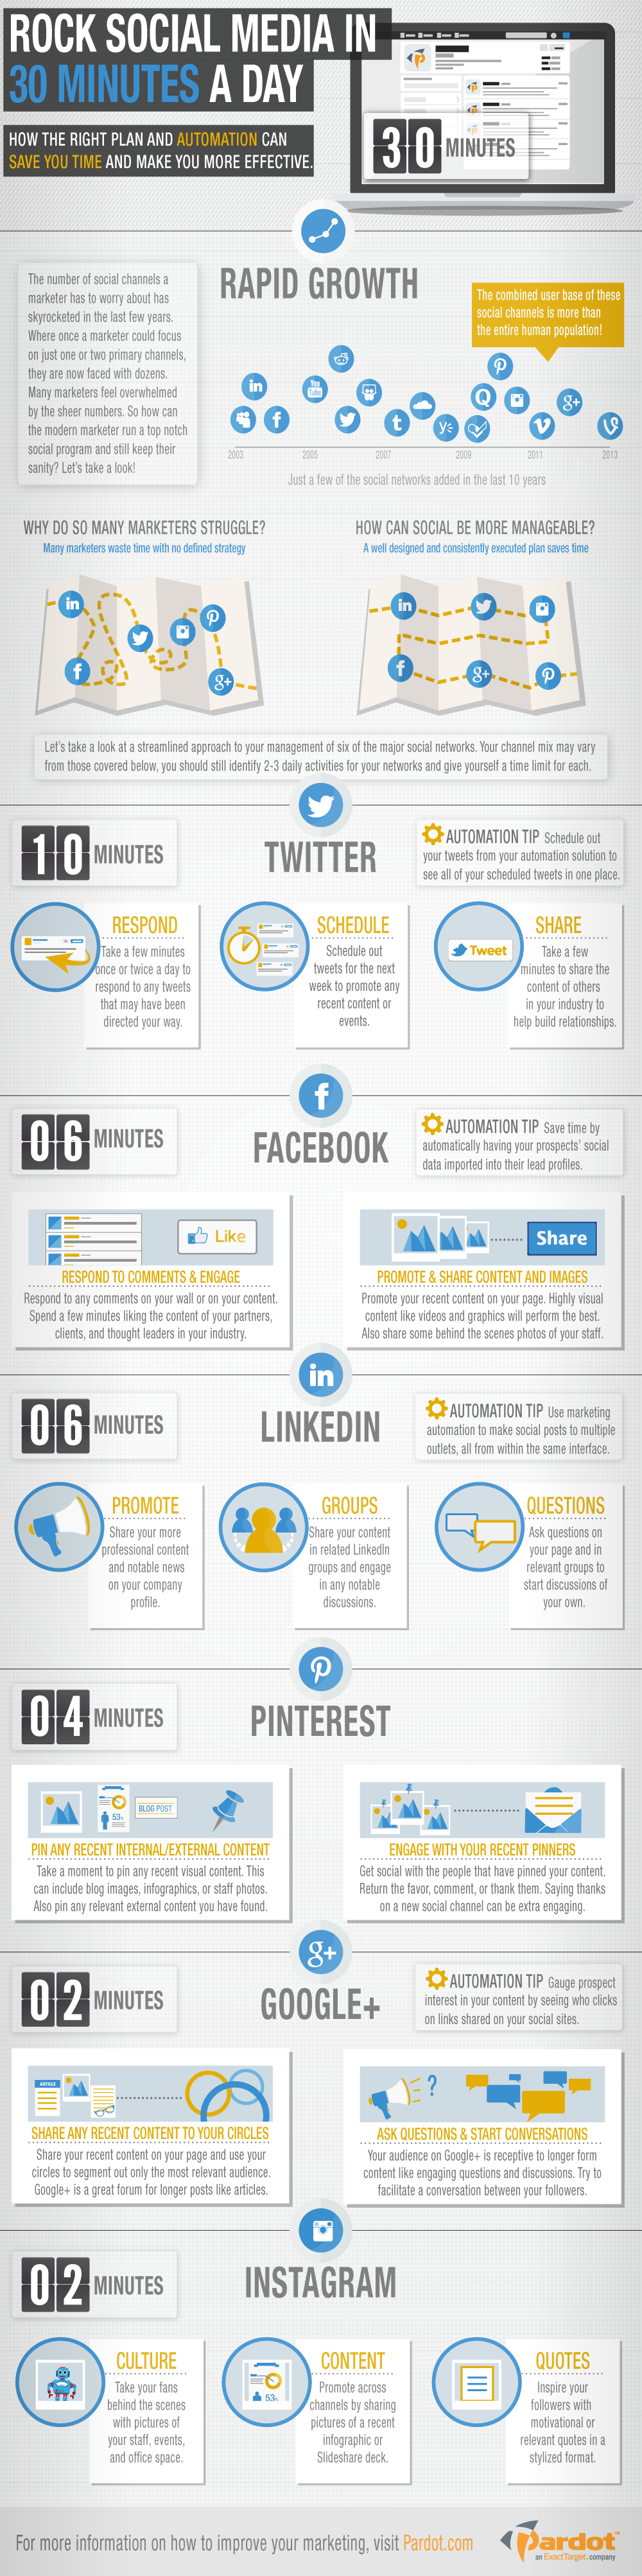 Social Media In 30 Minutes A Day [Infographic]